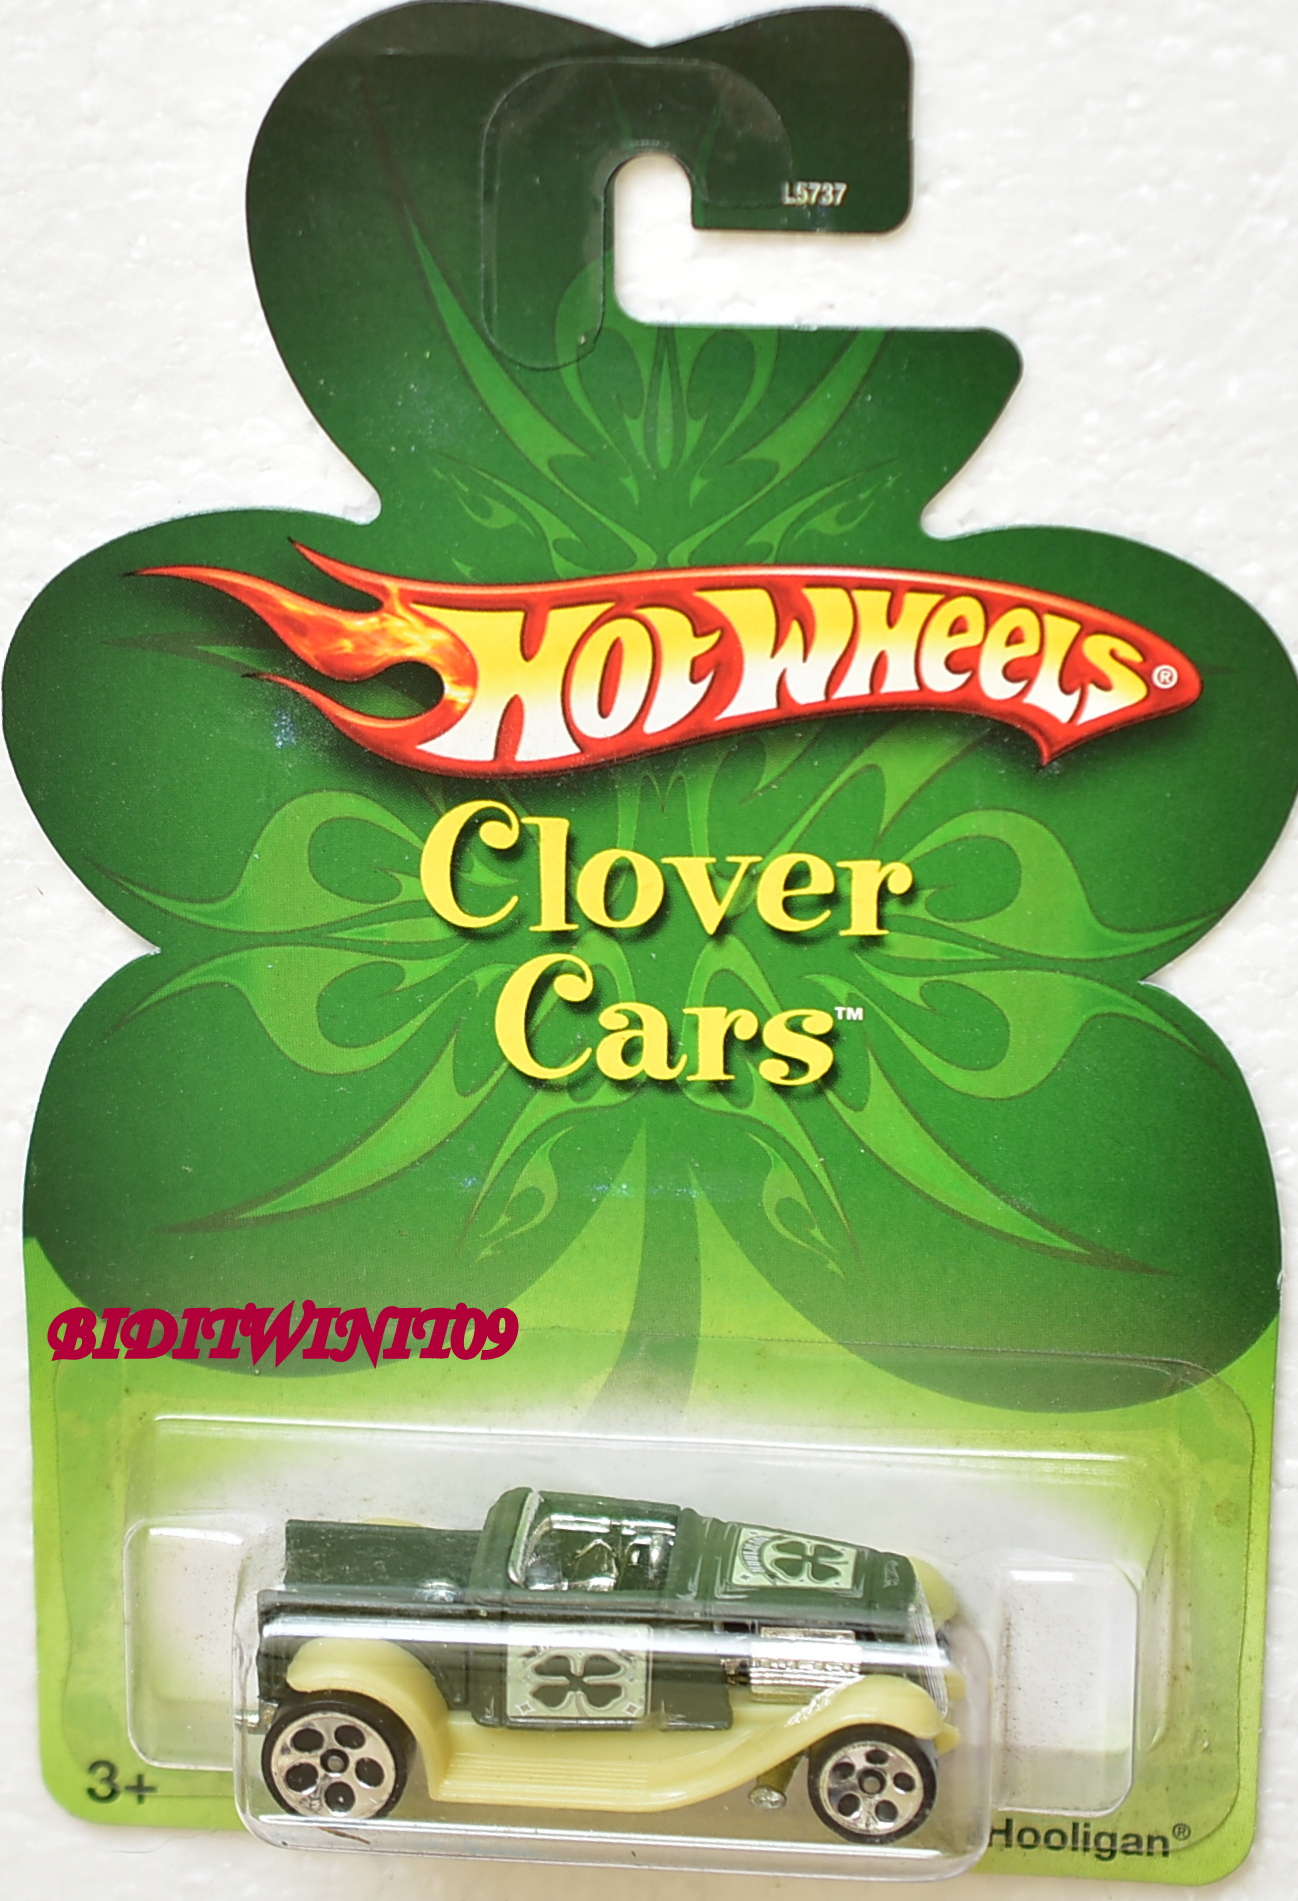 HOT WHEELS 2007 CLOVER CARS HOOLIGAN GREEN